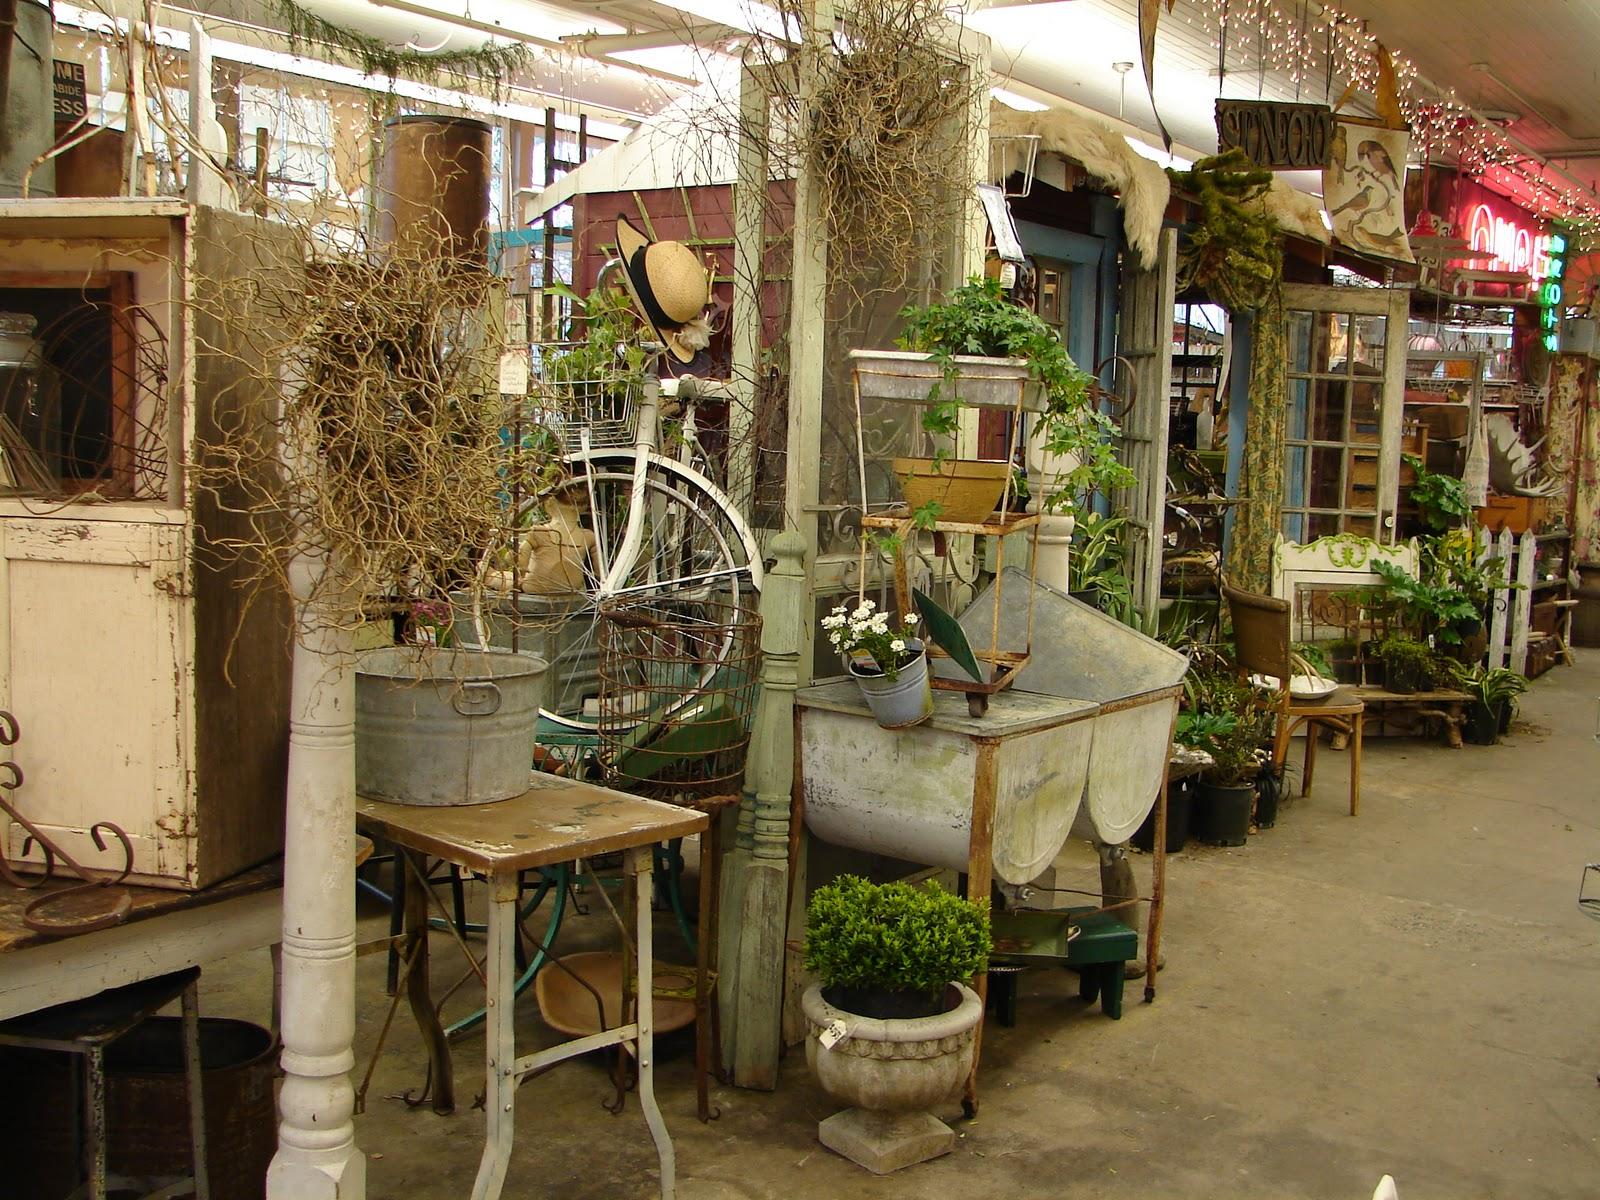 Monticello Antique Marketplace: Garden Show Sneeky Peeks!!